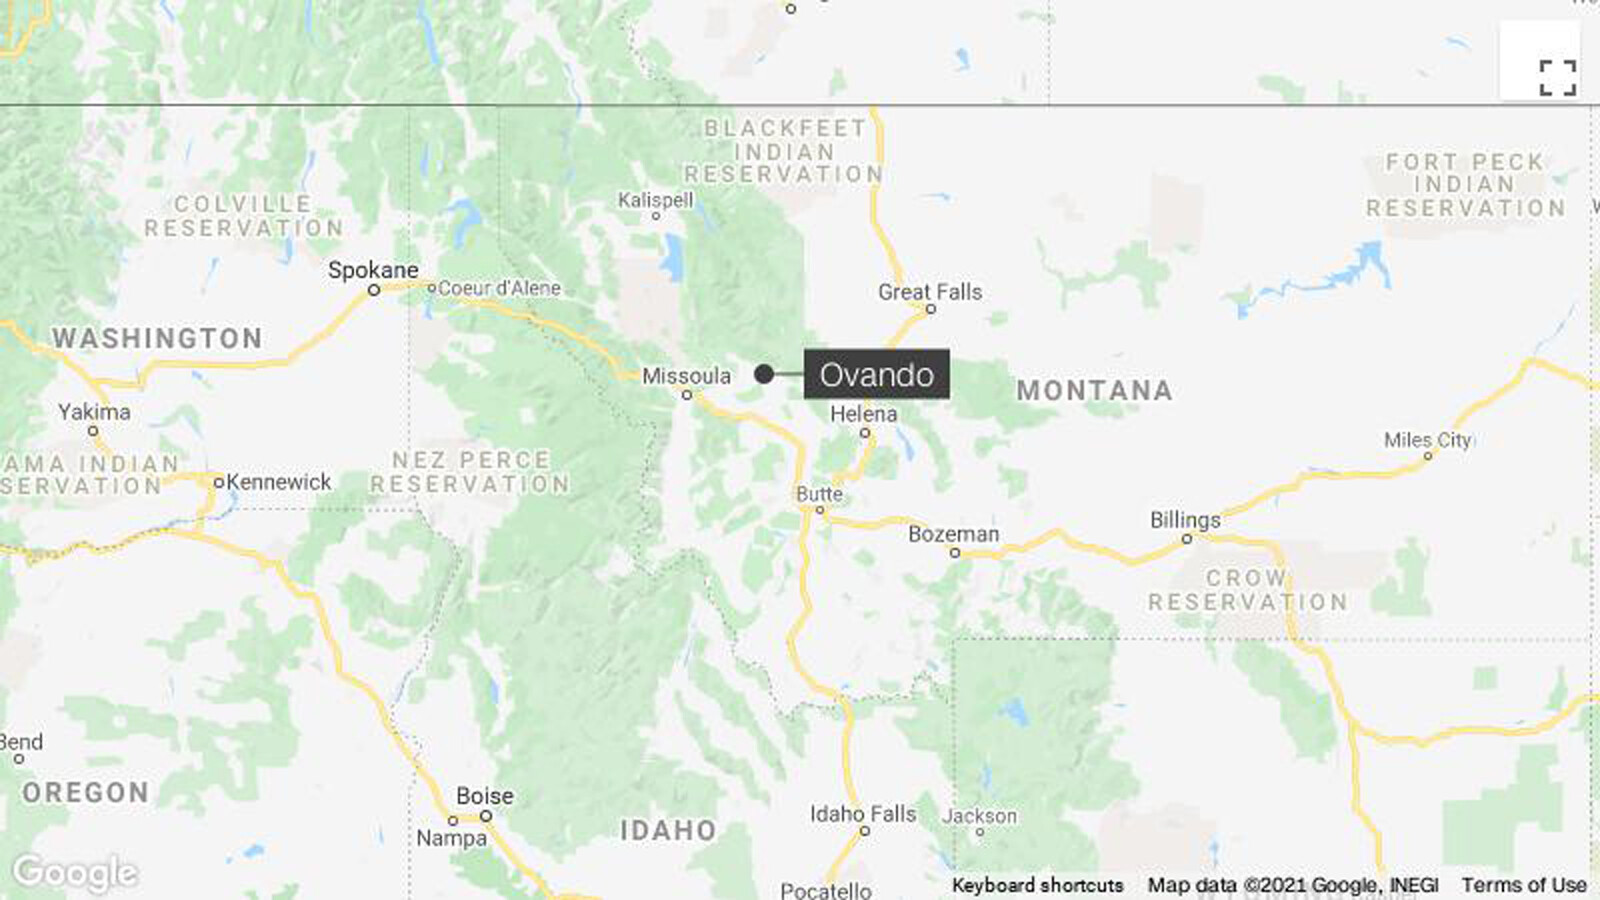 Officials kill grizzly bear in Montana, less than 2 miles from where woman was killed